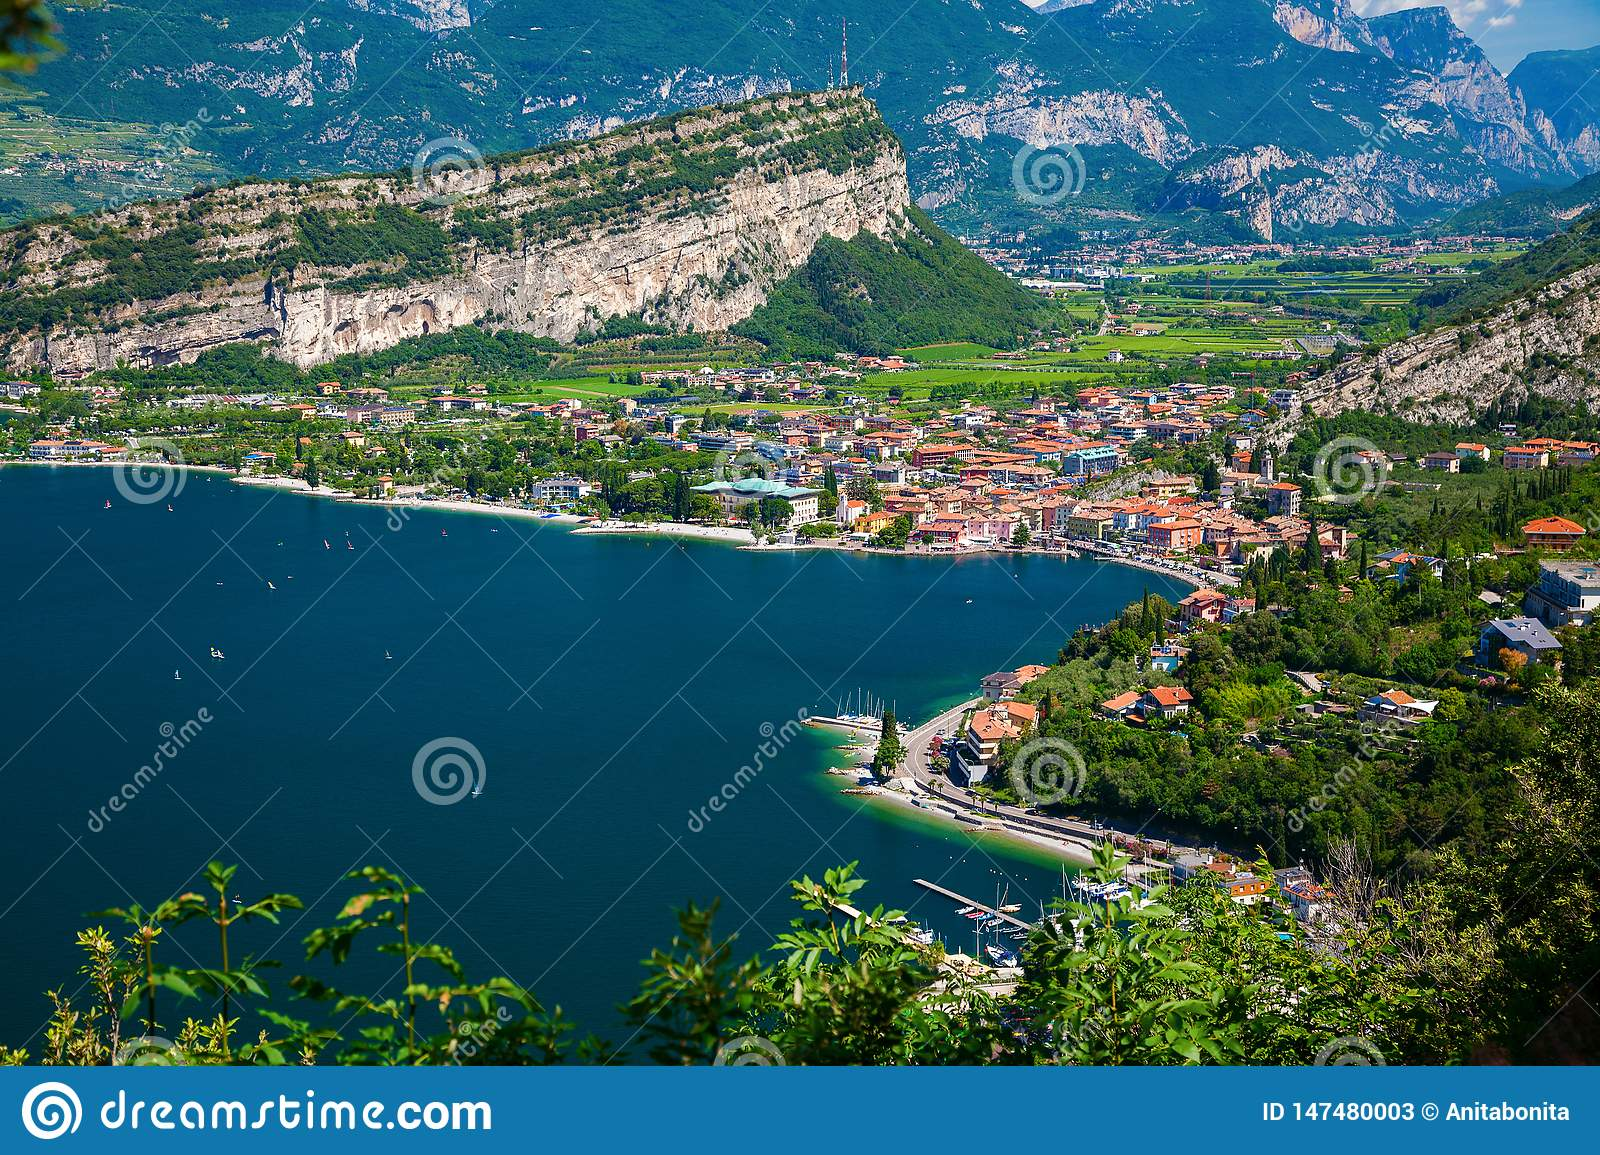 Aerial view on the small village Nago-Torbole